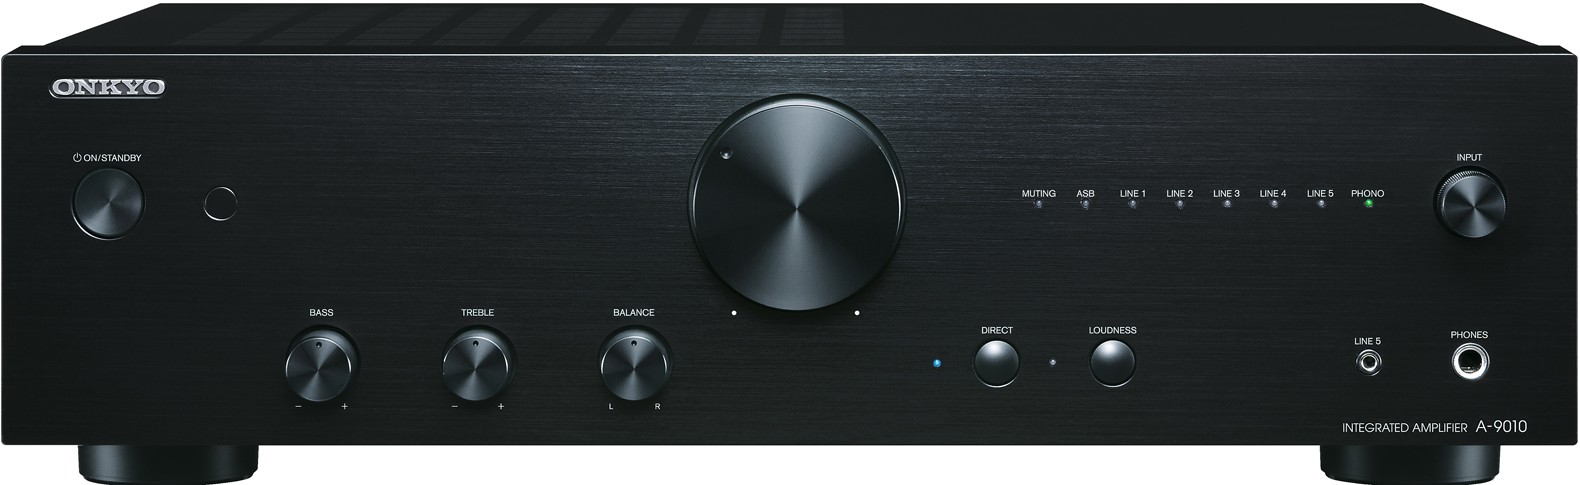 Onkyo A9010 Integrated Amplifier